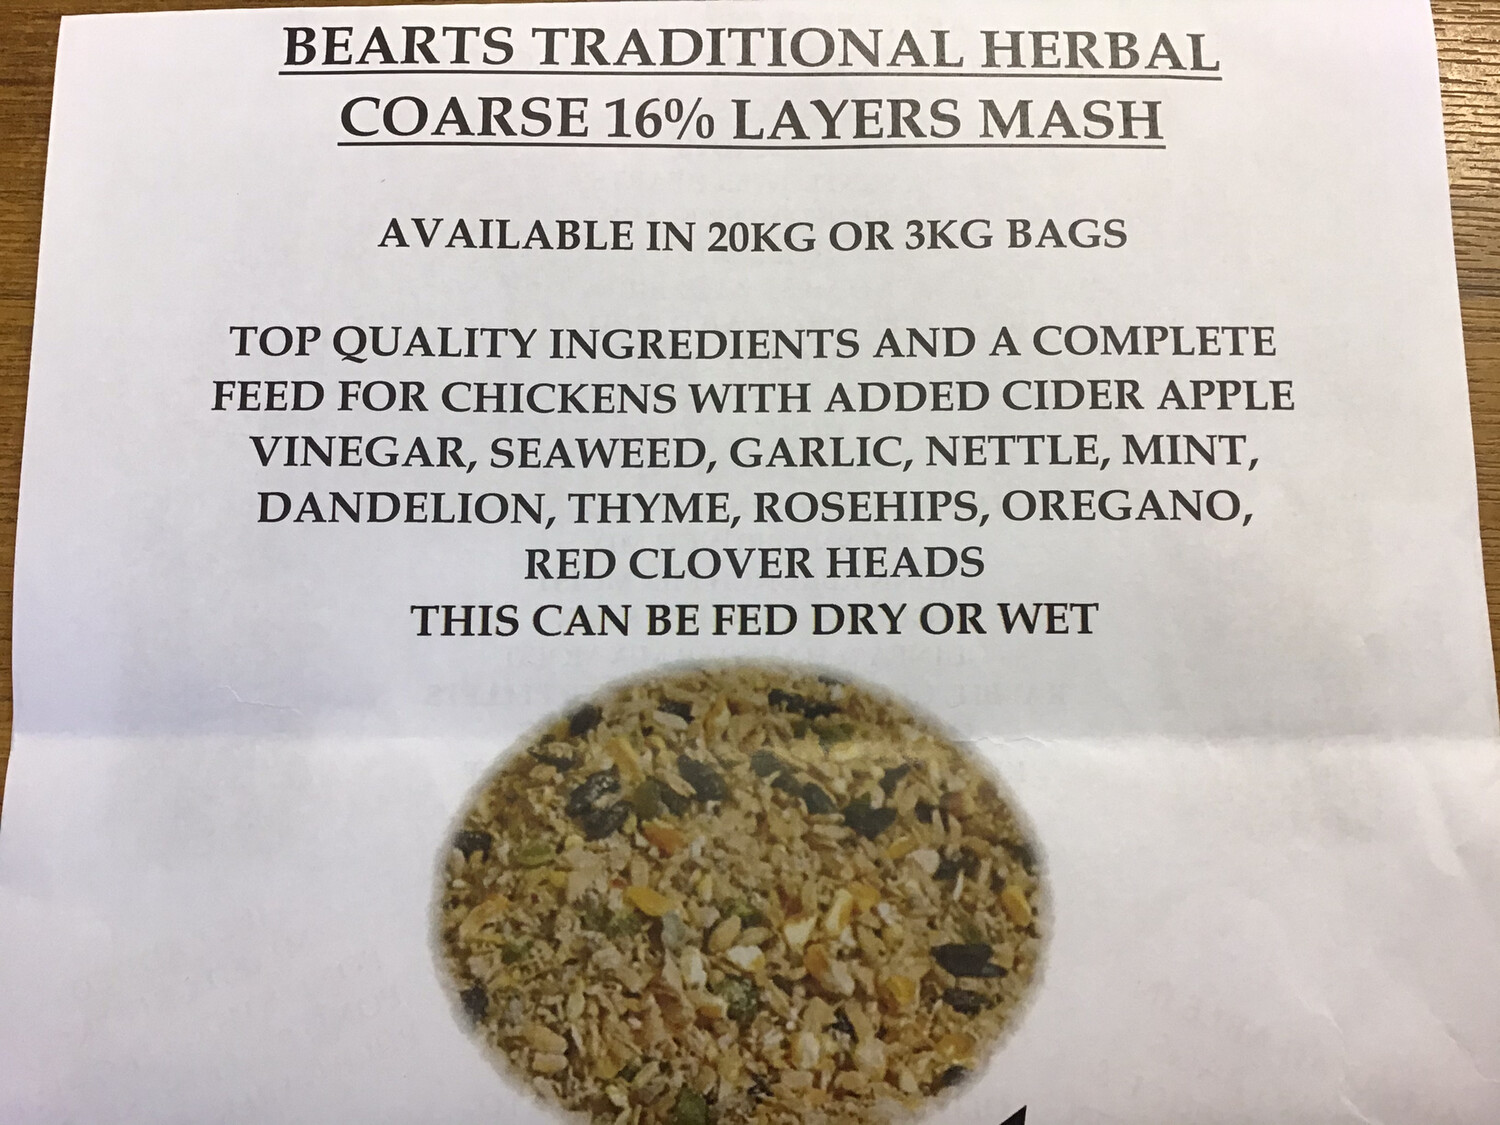 BEARTS TRADITIONAL HERBAL COURSE 16% LAYERS MASH. 20kg